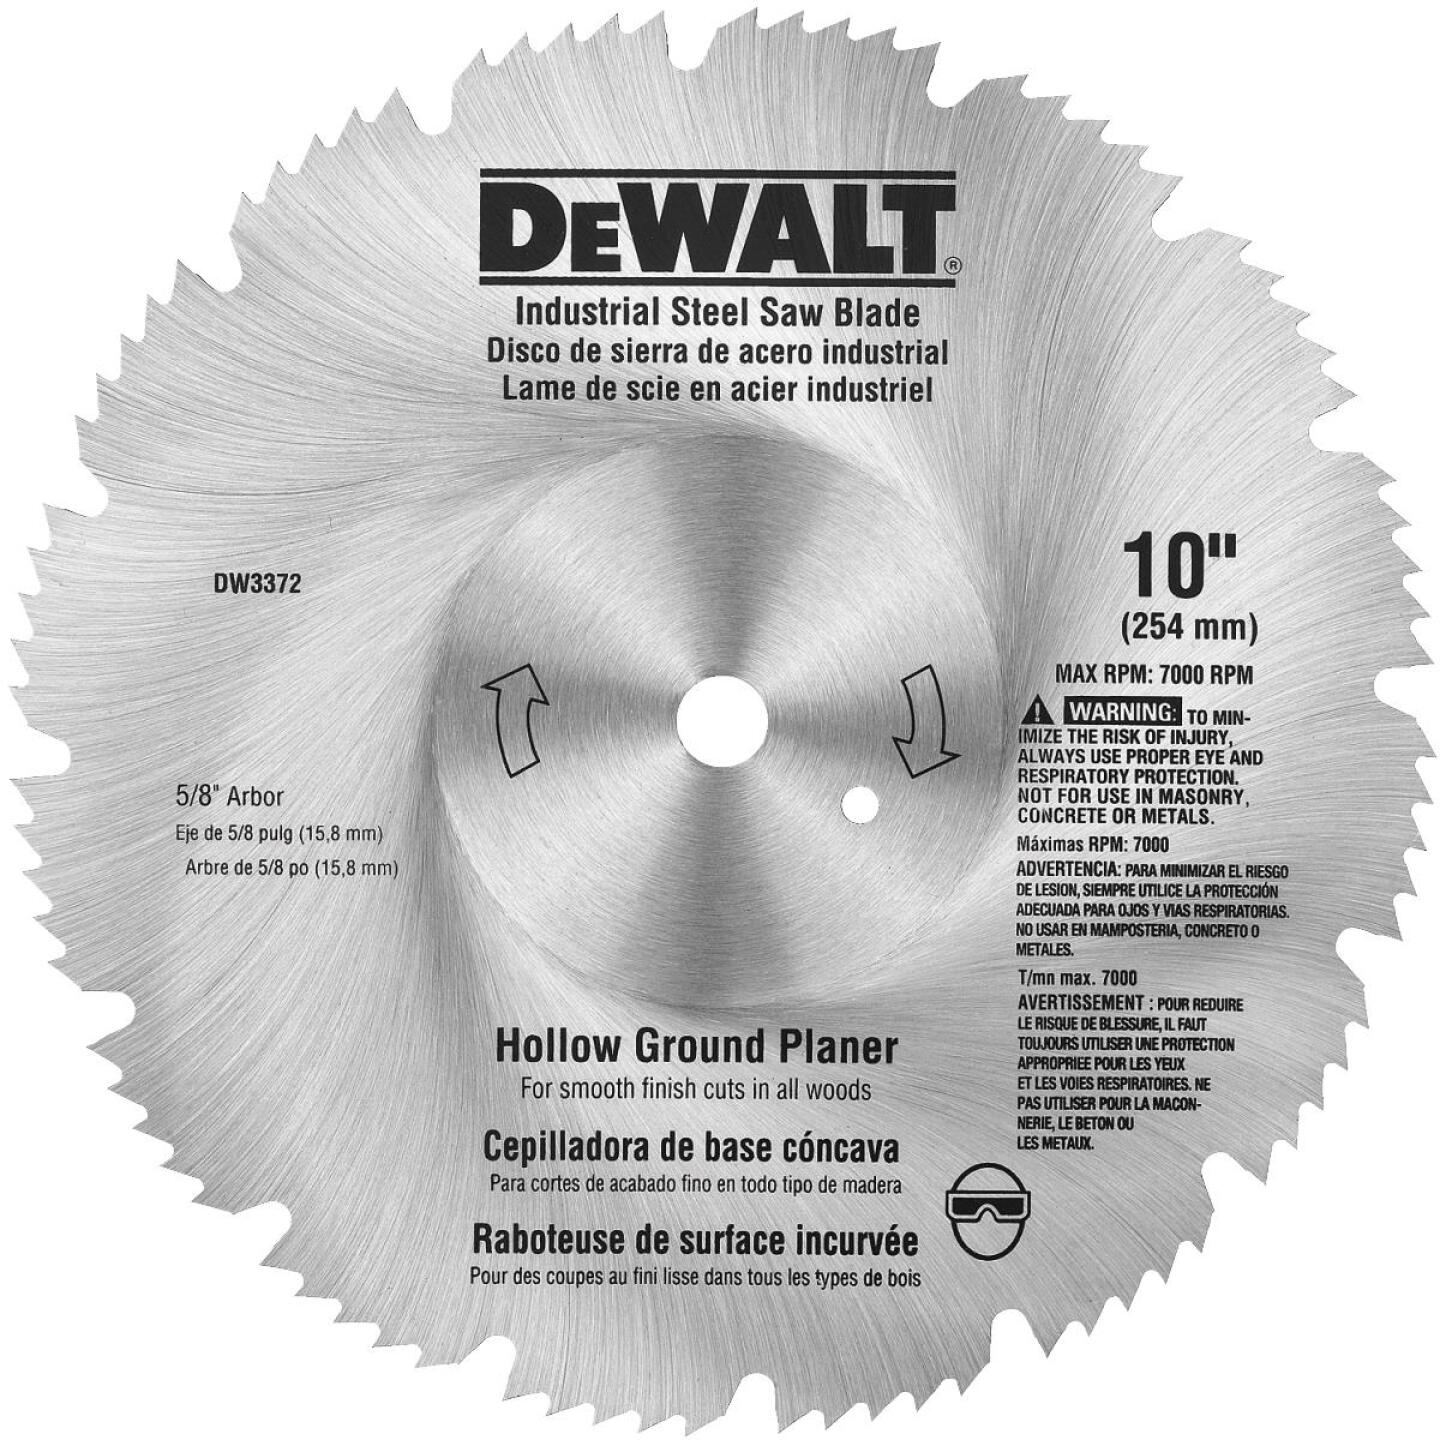 DeWalt Industrial Steel 10 In. 80-Tooth Hollow Ground Planer Circular Saw Blade Image 1